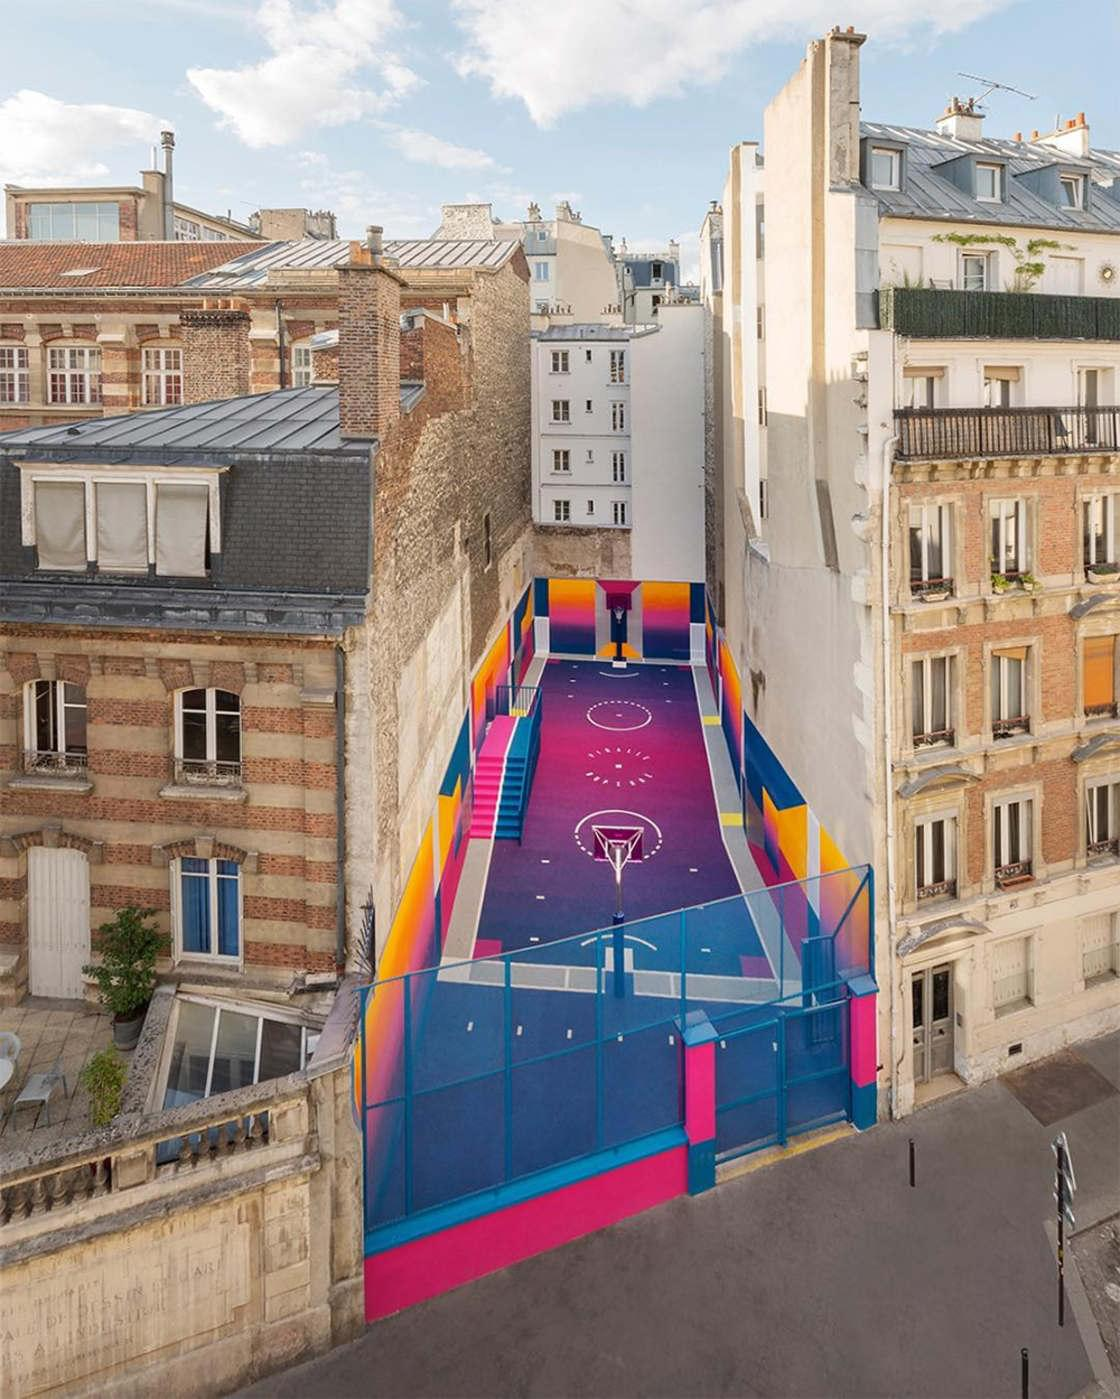 The Playground Duperré Pigalle just got a new design!